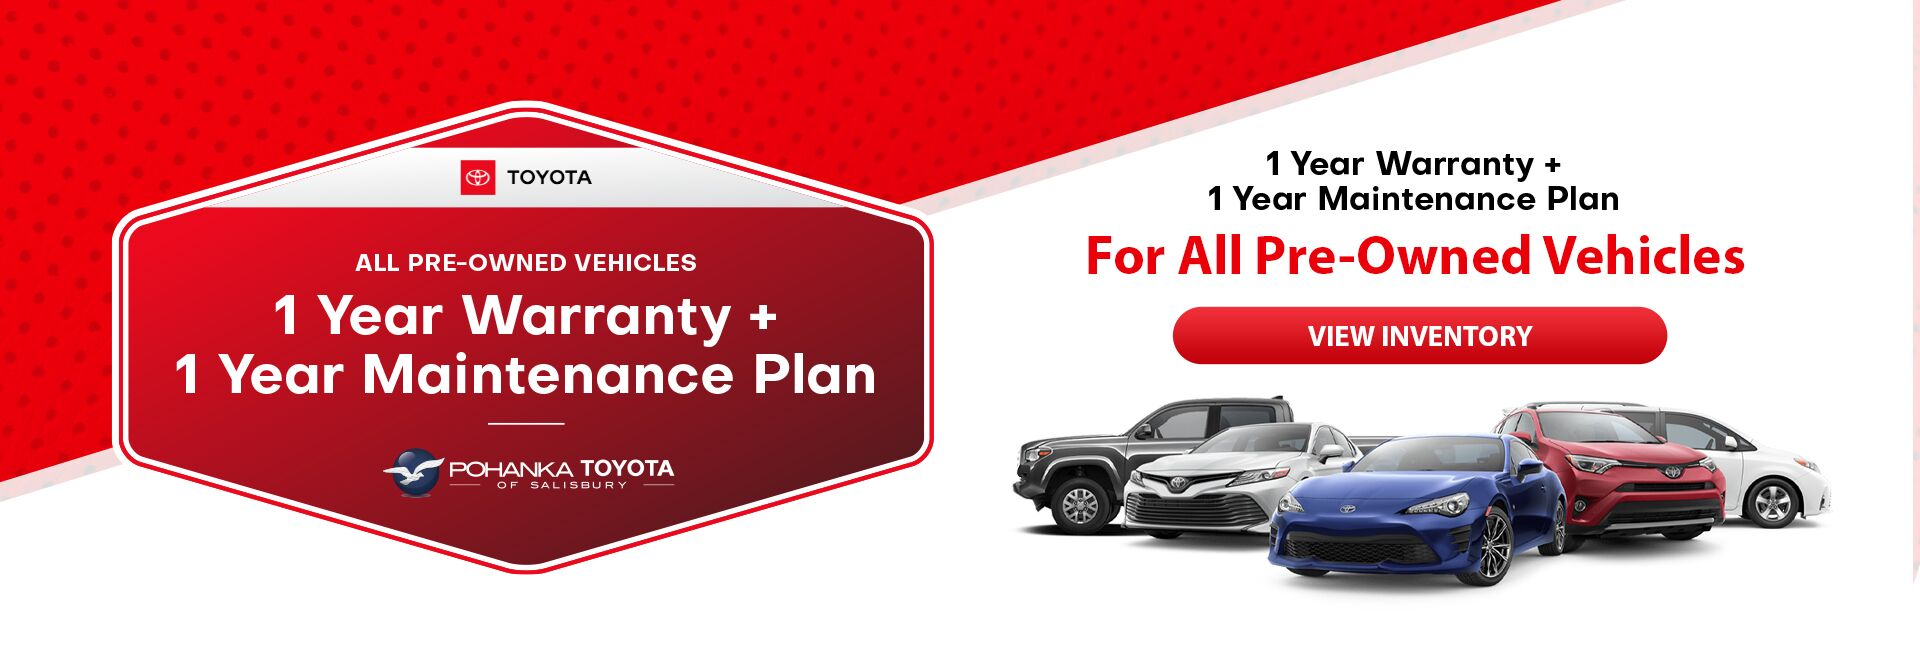 All Pre-Owned Vehicles 1 Year Warranty + 1 Year Maintenance Plan